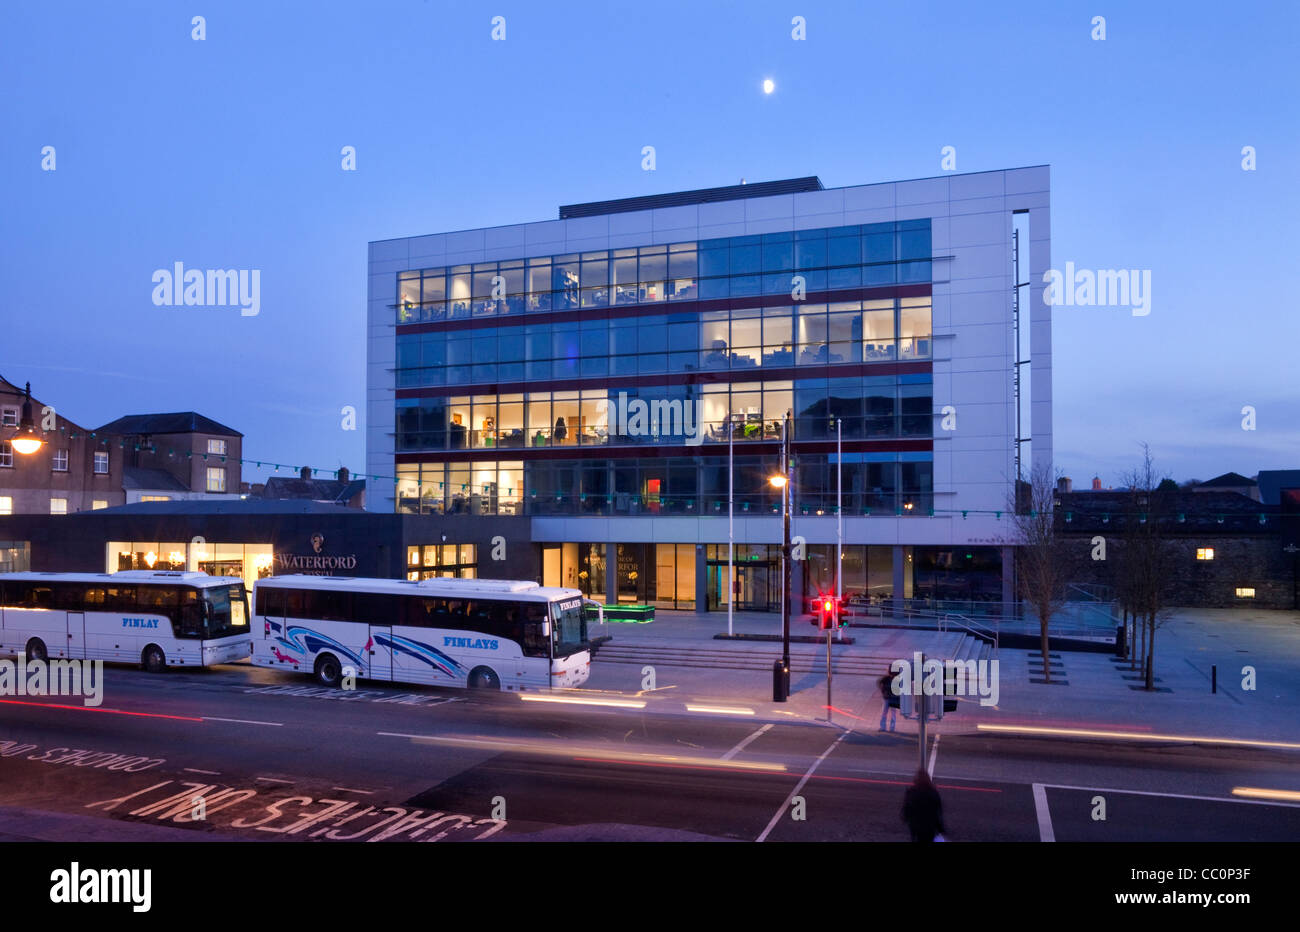 The Waterford Crystal Visitors Centre, Waterford City, Ireland - Stock Image